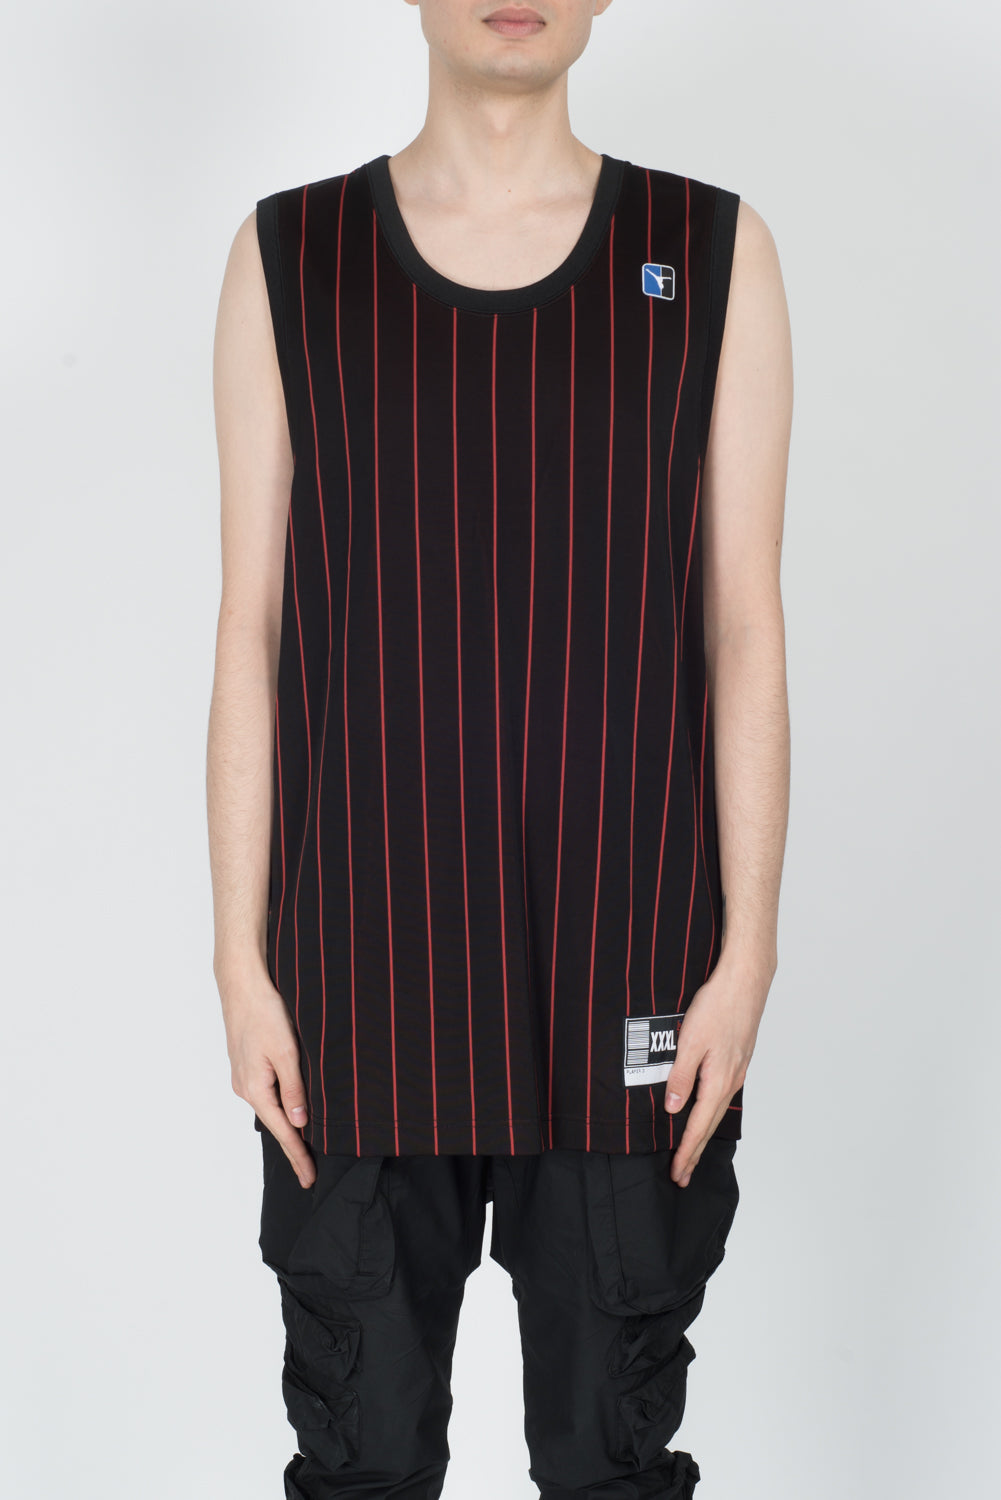 Alexander Wang Pinstripe Jersey Athletic Tank In Black